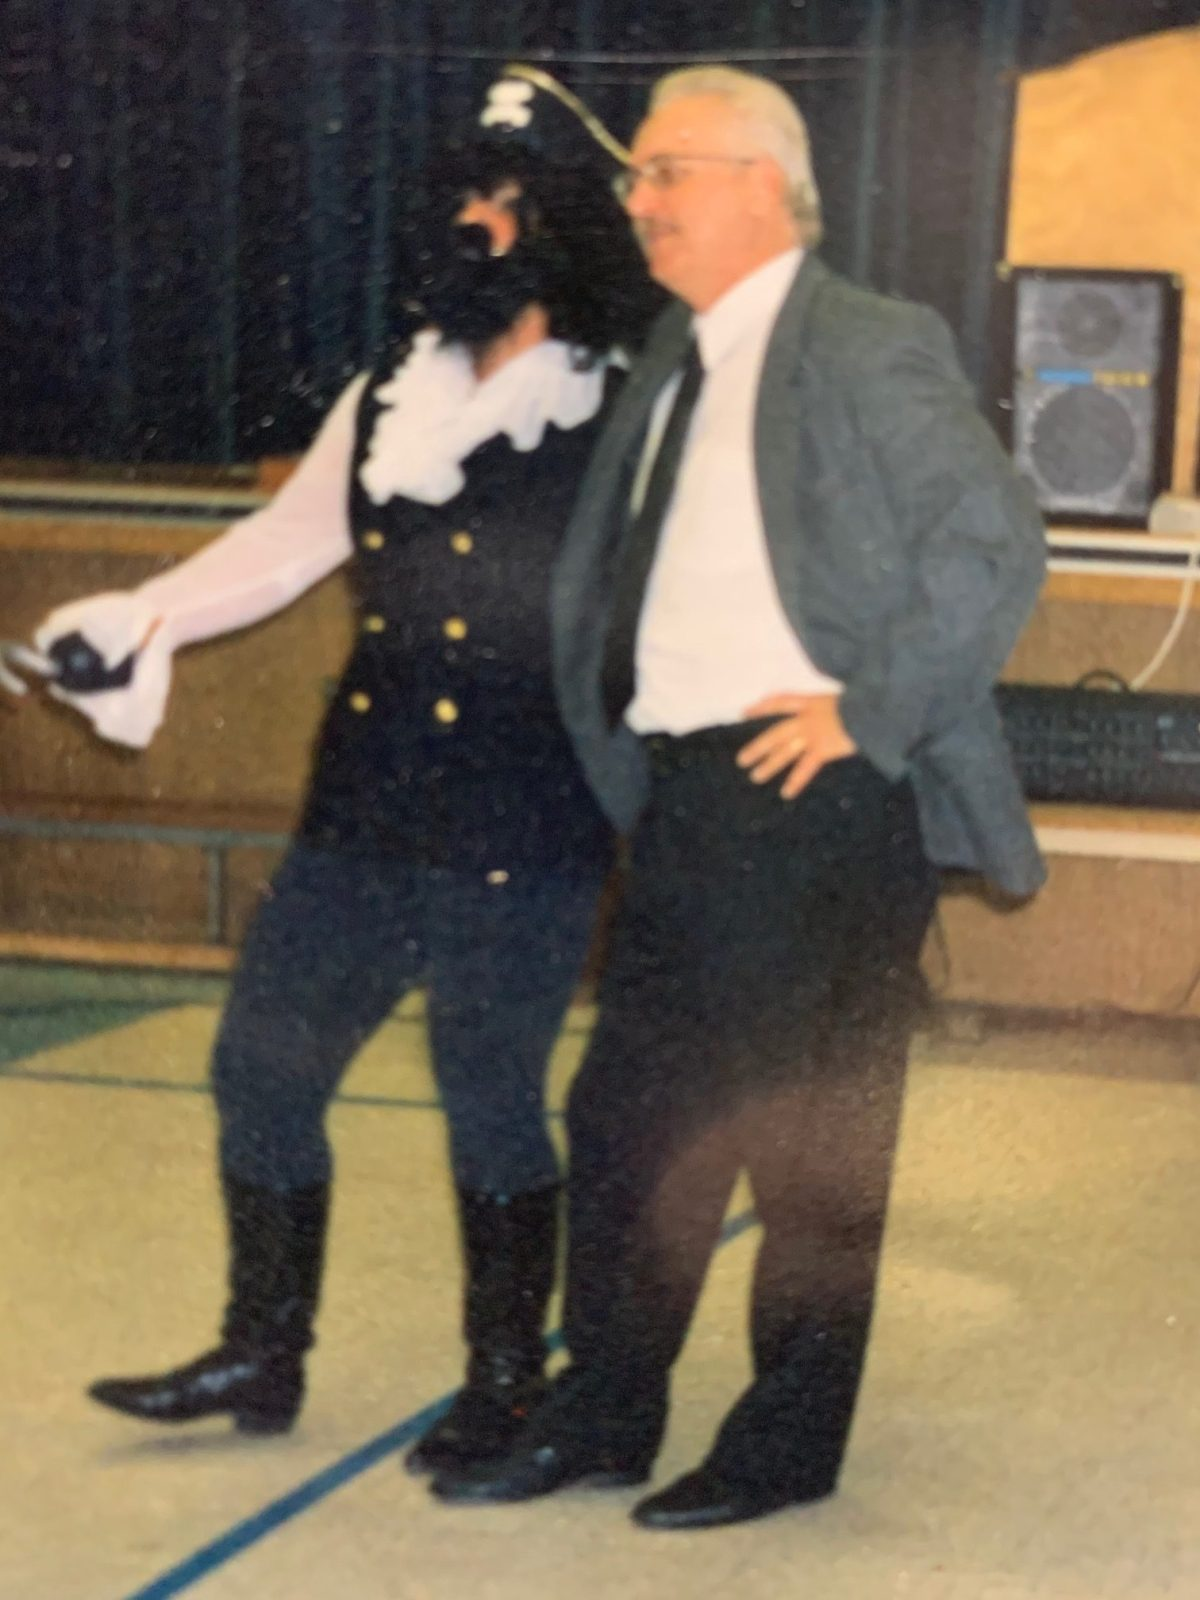 MC Rolston as Captain Hook